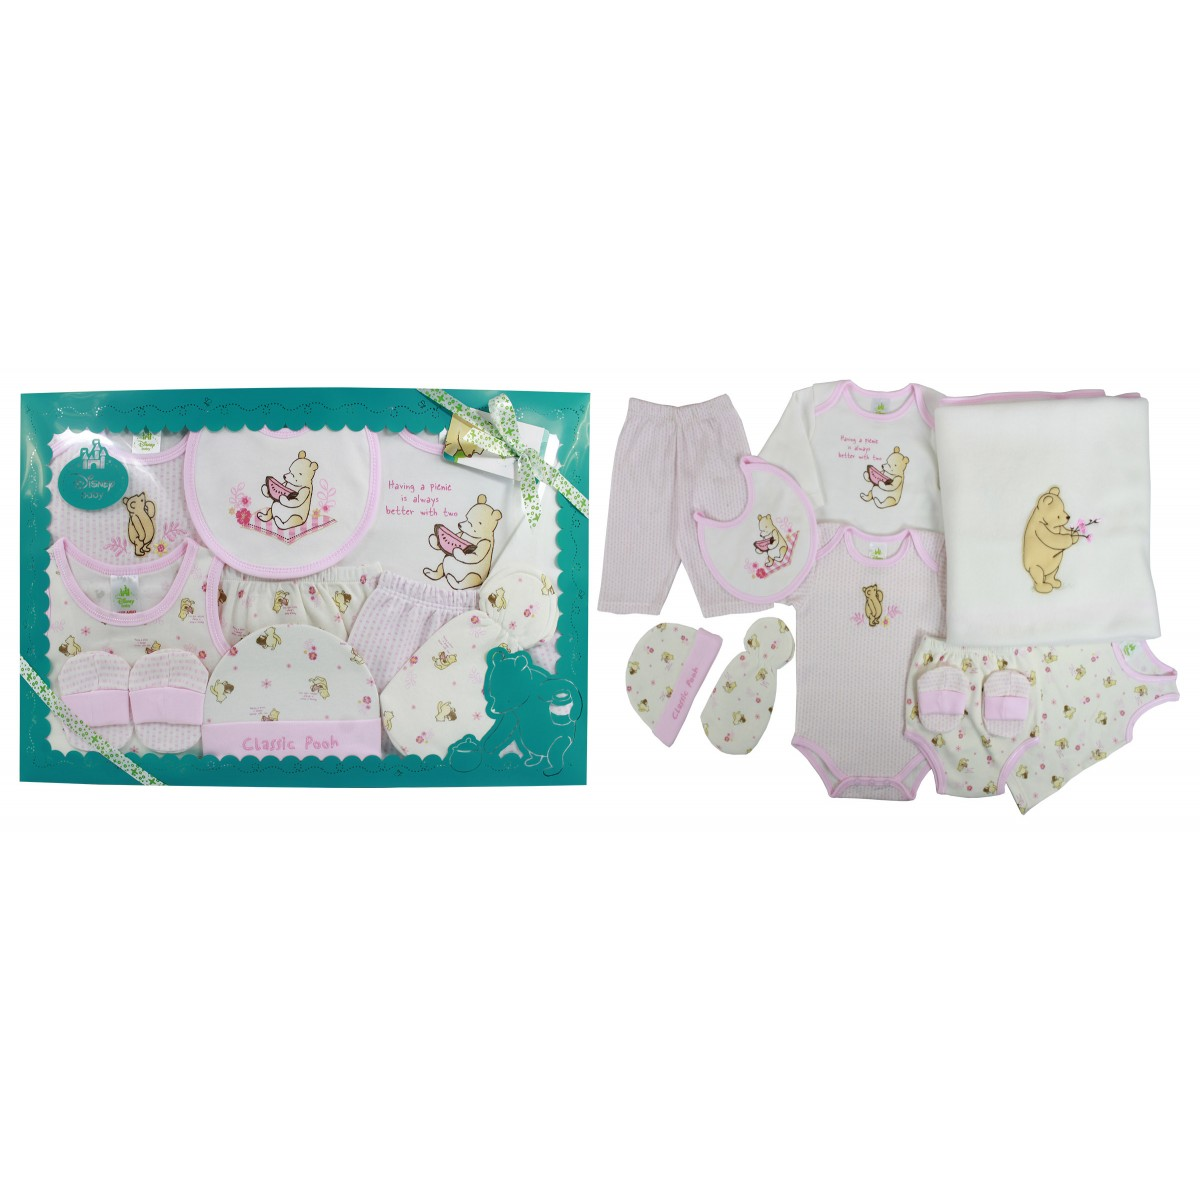 Baby Gift Set Packaging : Pcs baby gift set lilsoft